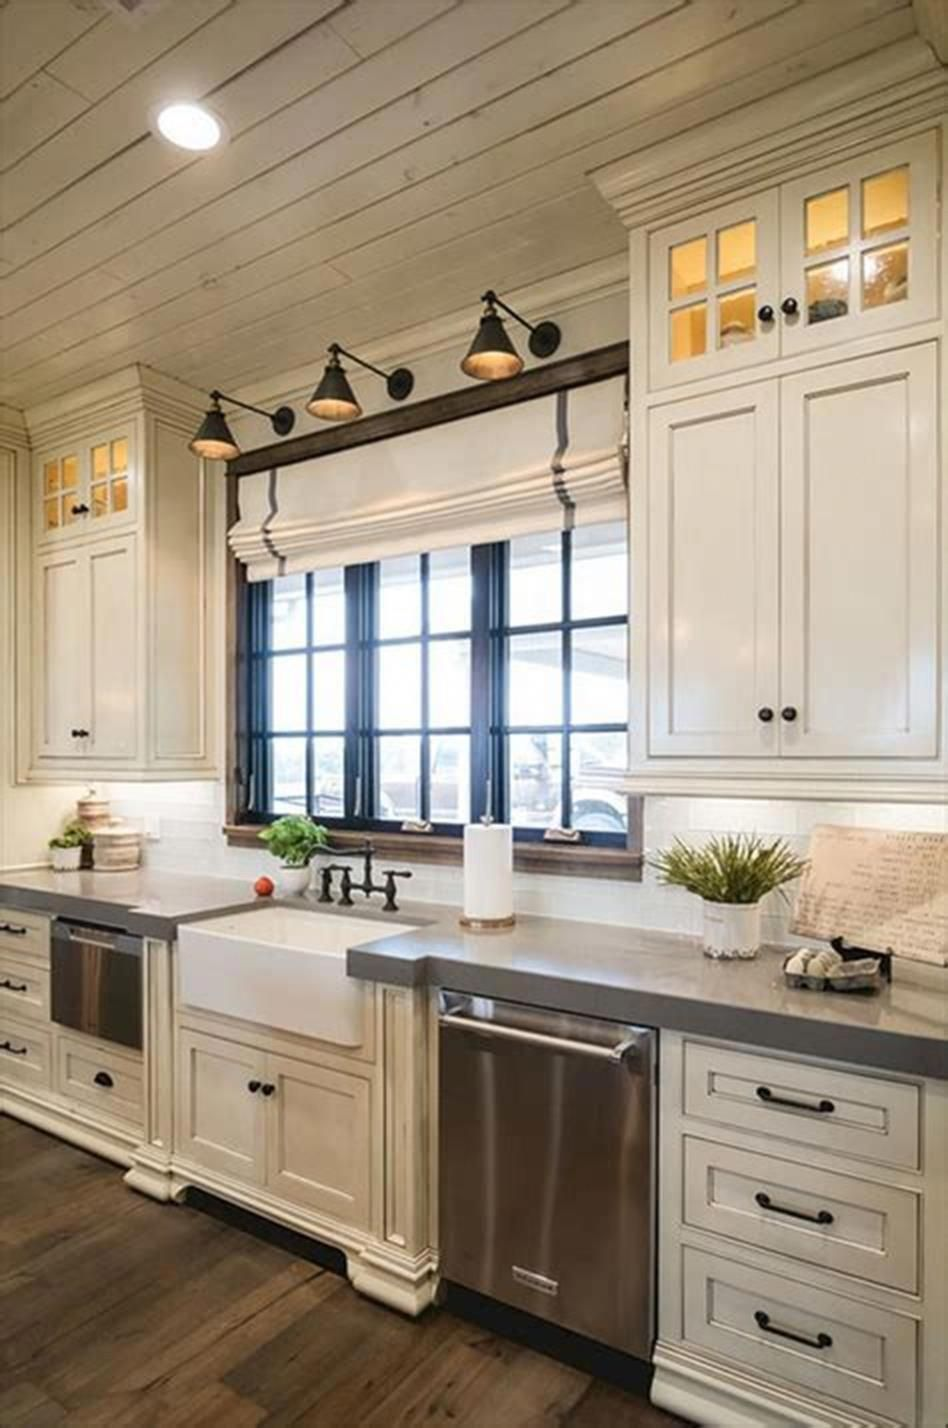 Beautiful 18 Old Farmhouse Kitchen Cabinets For Sale In 2020 Kitchen Cabinets Decor Farmhouse Kitchen Decor Home Decor Kitchen